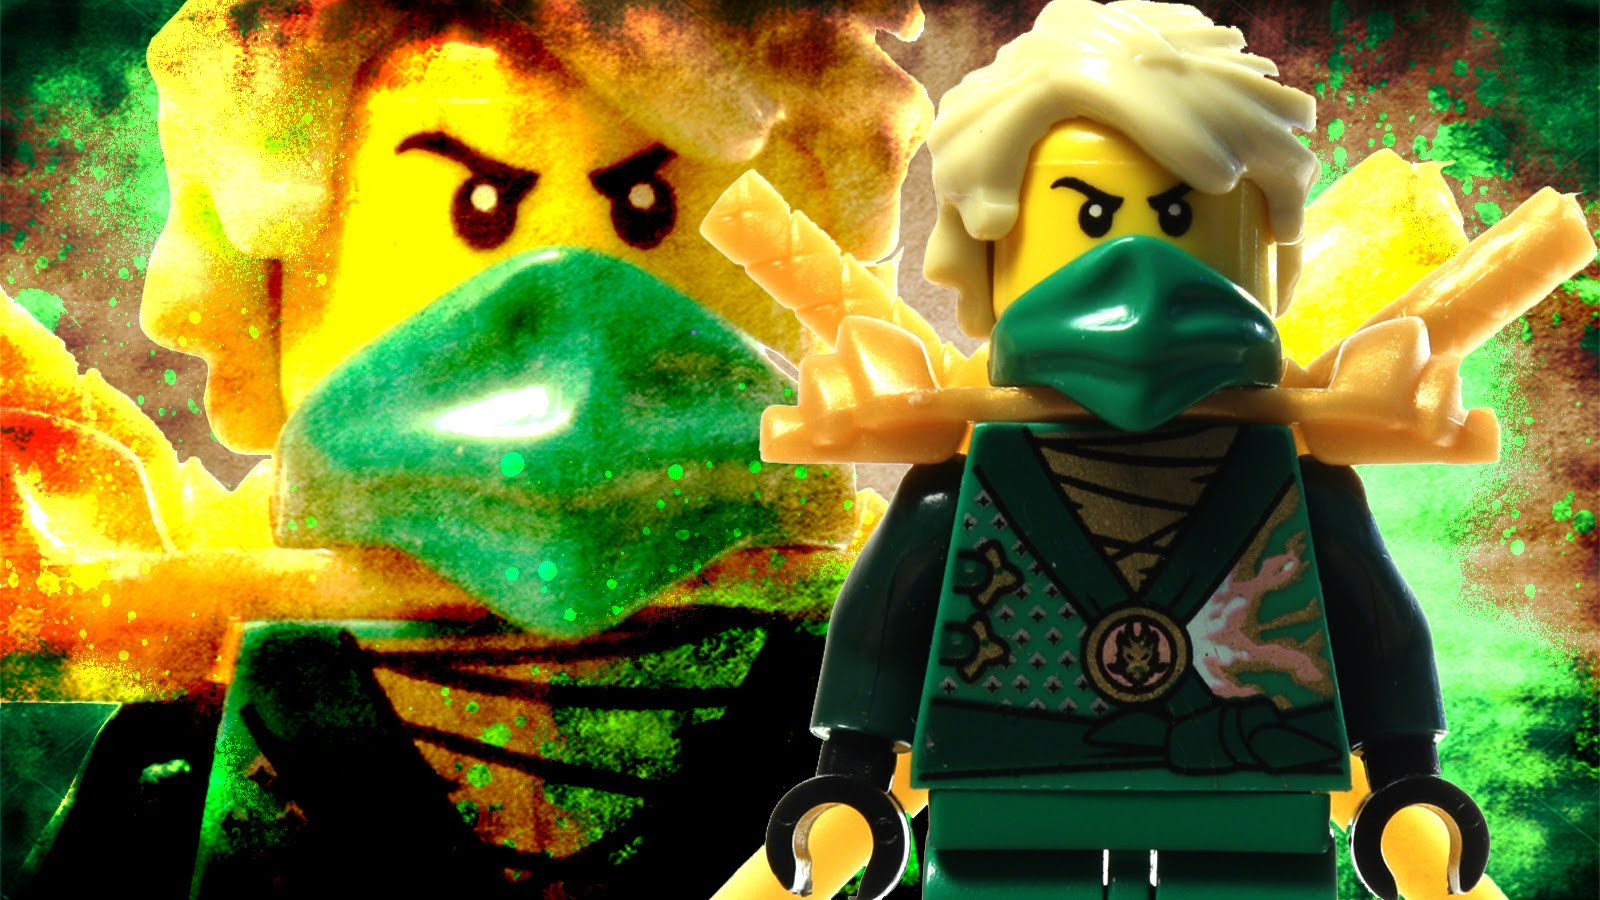 Group Of Lego Ninjago Desktop Wallpaper